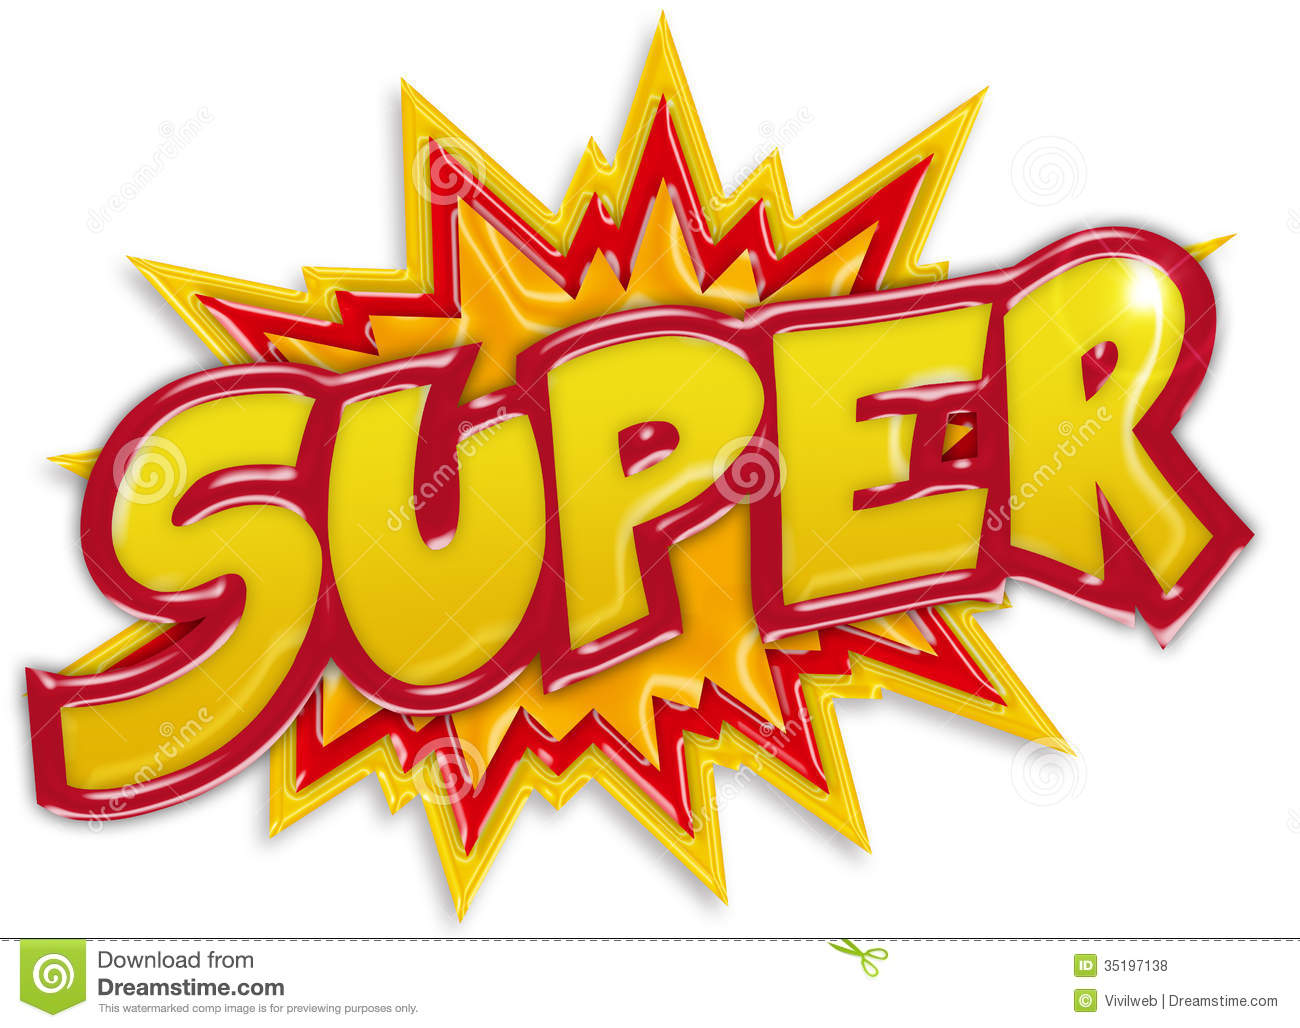 Explosive Super Label Royalty Free Stock Photos - Image: 35197138 Superhero Flying Vector